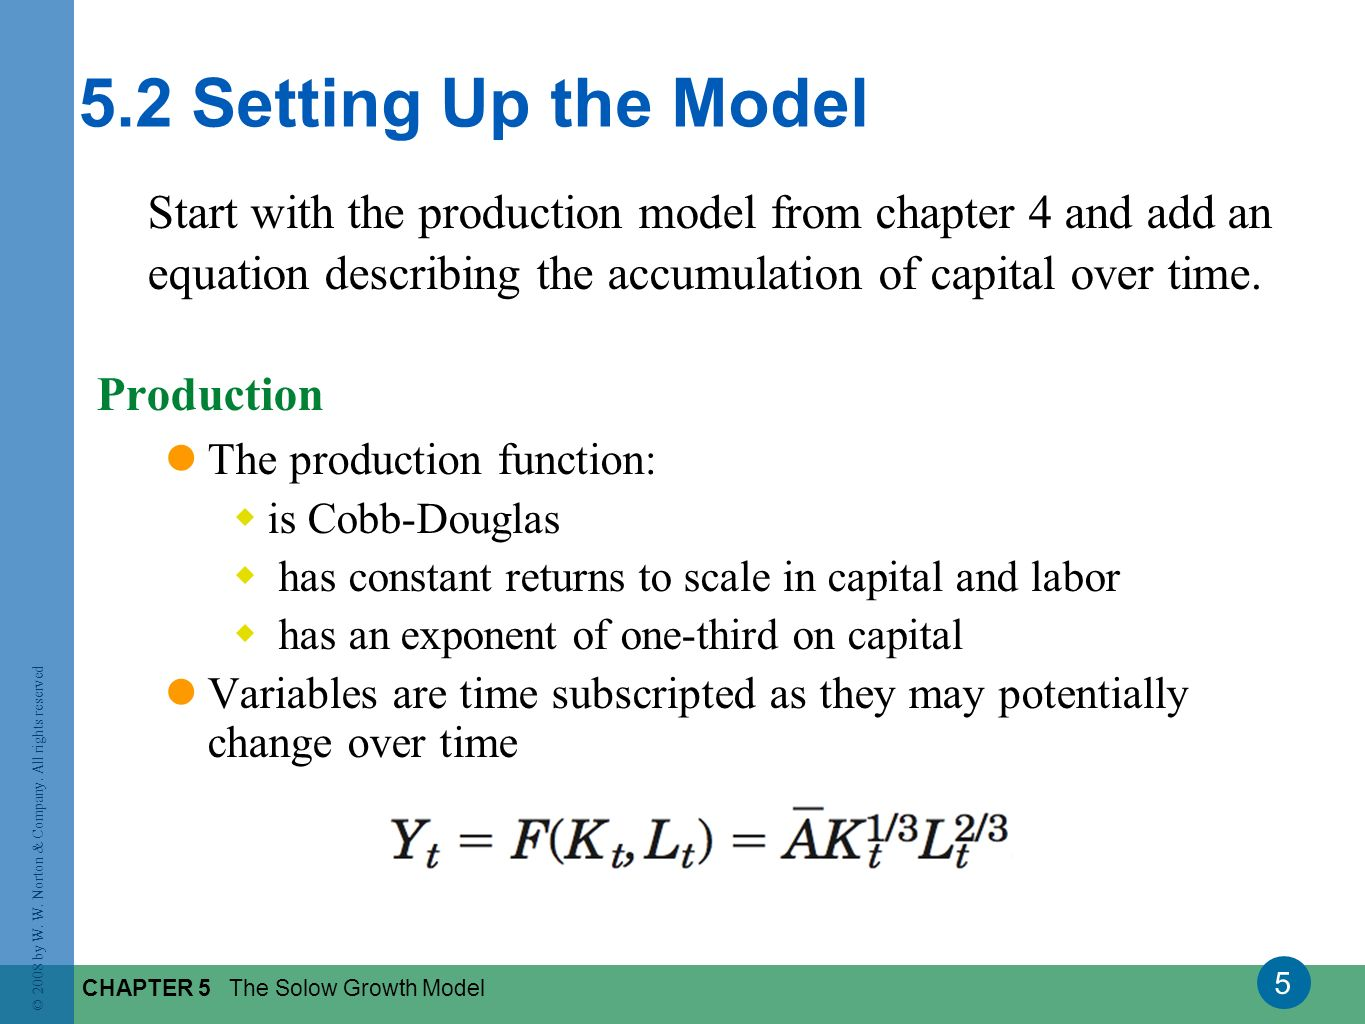 5 © 2008 by W. W. Norton & Company. All rights reserved CHAPTER 5 The Solow Growth Model 5.2 Setting Up the Model Start with the production model from